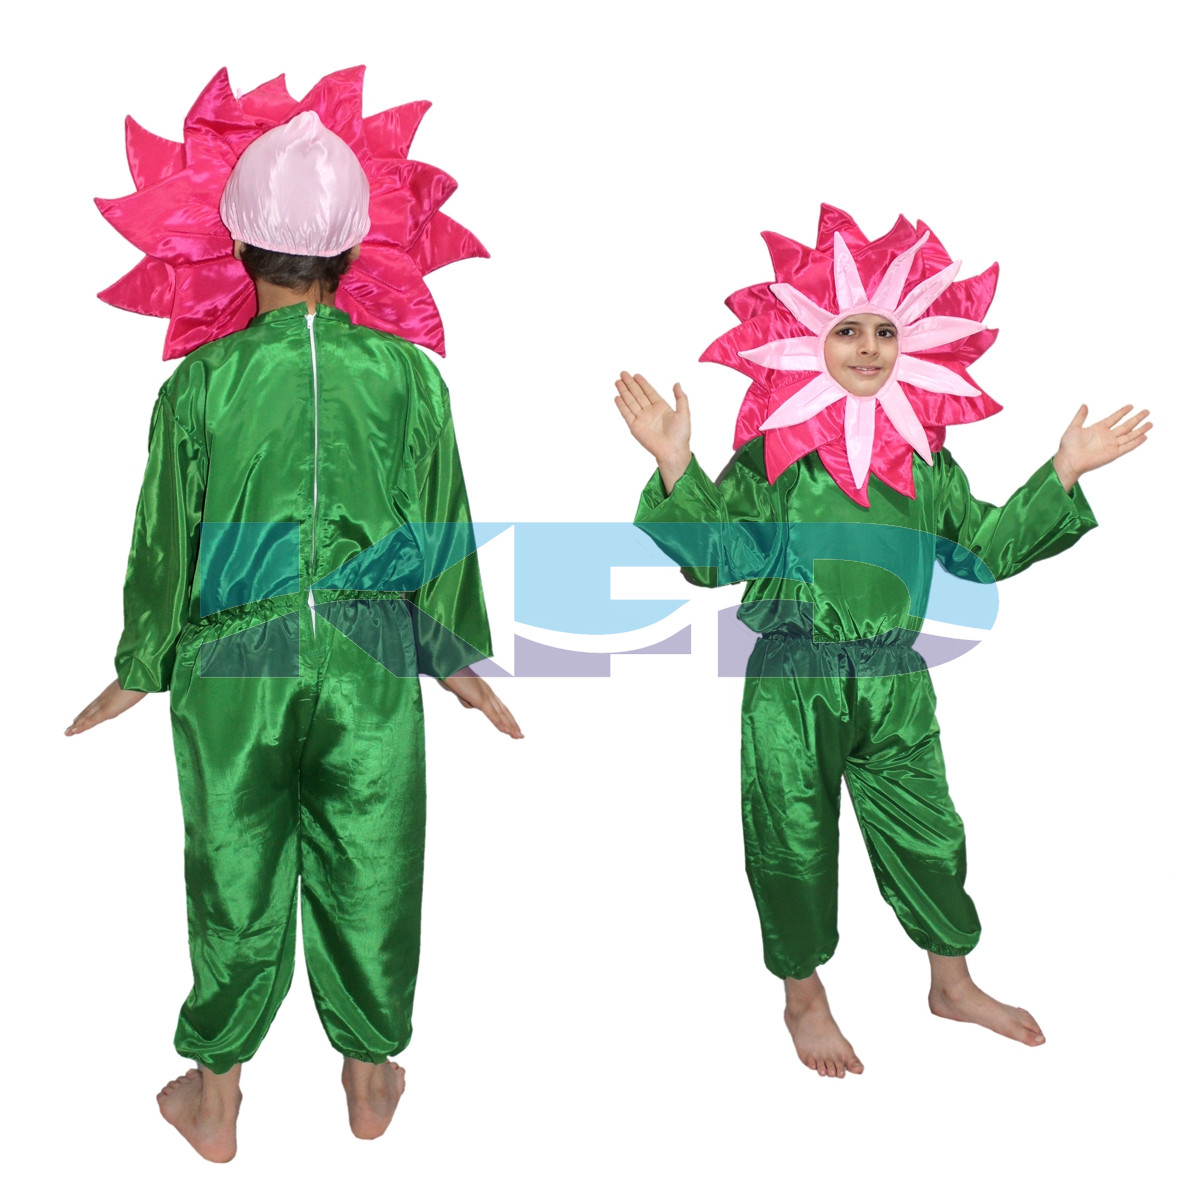 Pink flower fancy dress for kids,Nature Costume for Annual function/Theme Party/Stage Shows/Competition/Birthday Party Dress